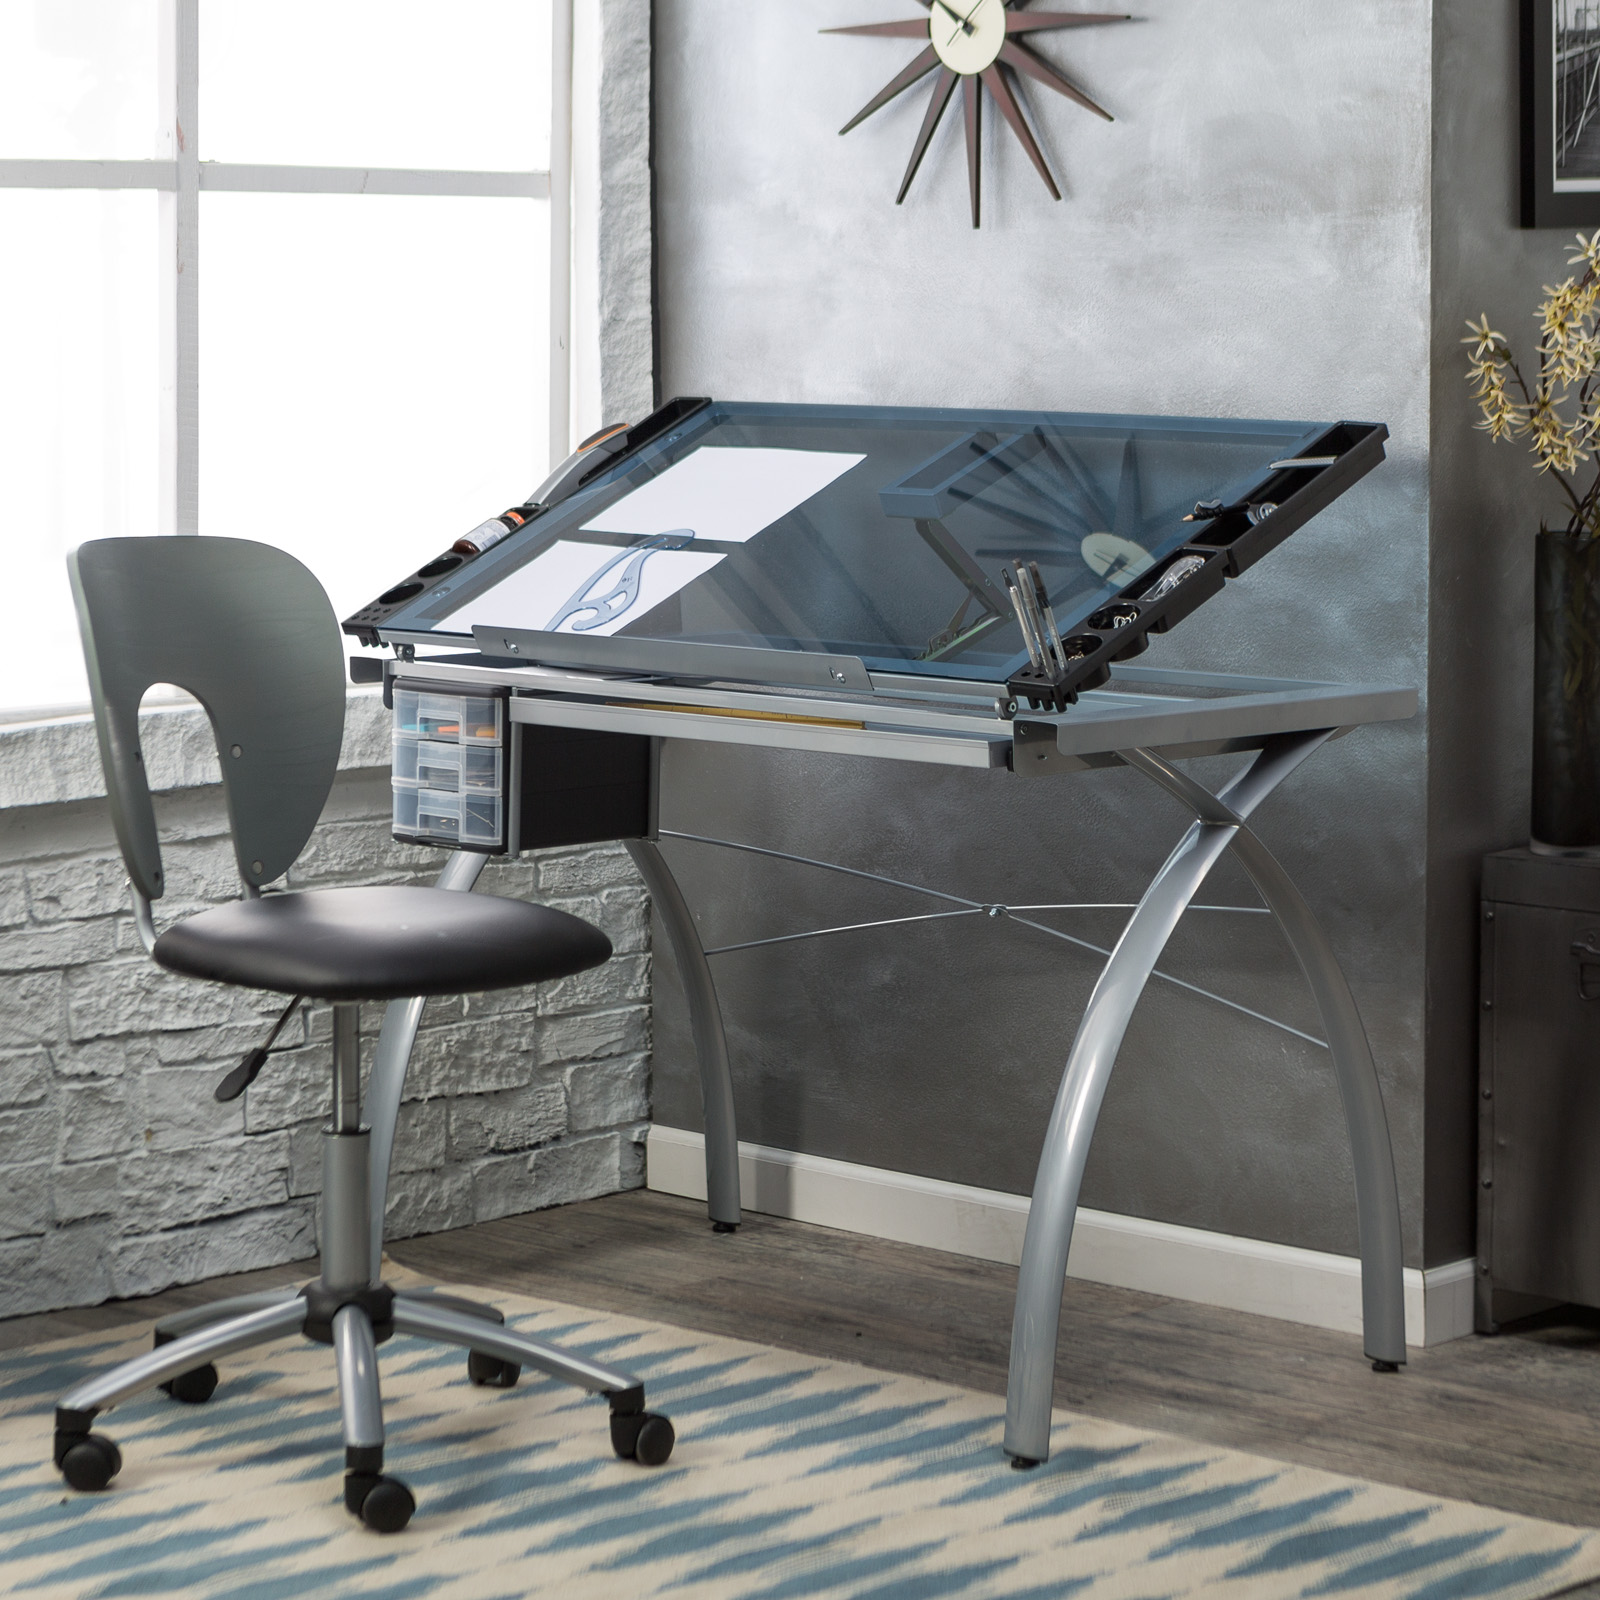 Studio Designs Futura Drafting Table and Chair Set | Hayneedle